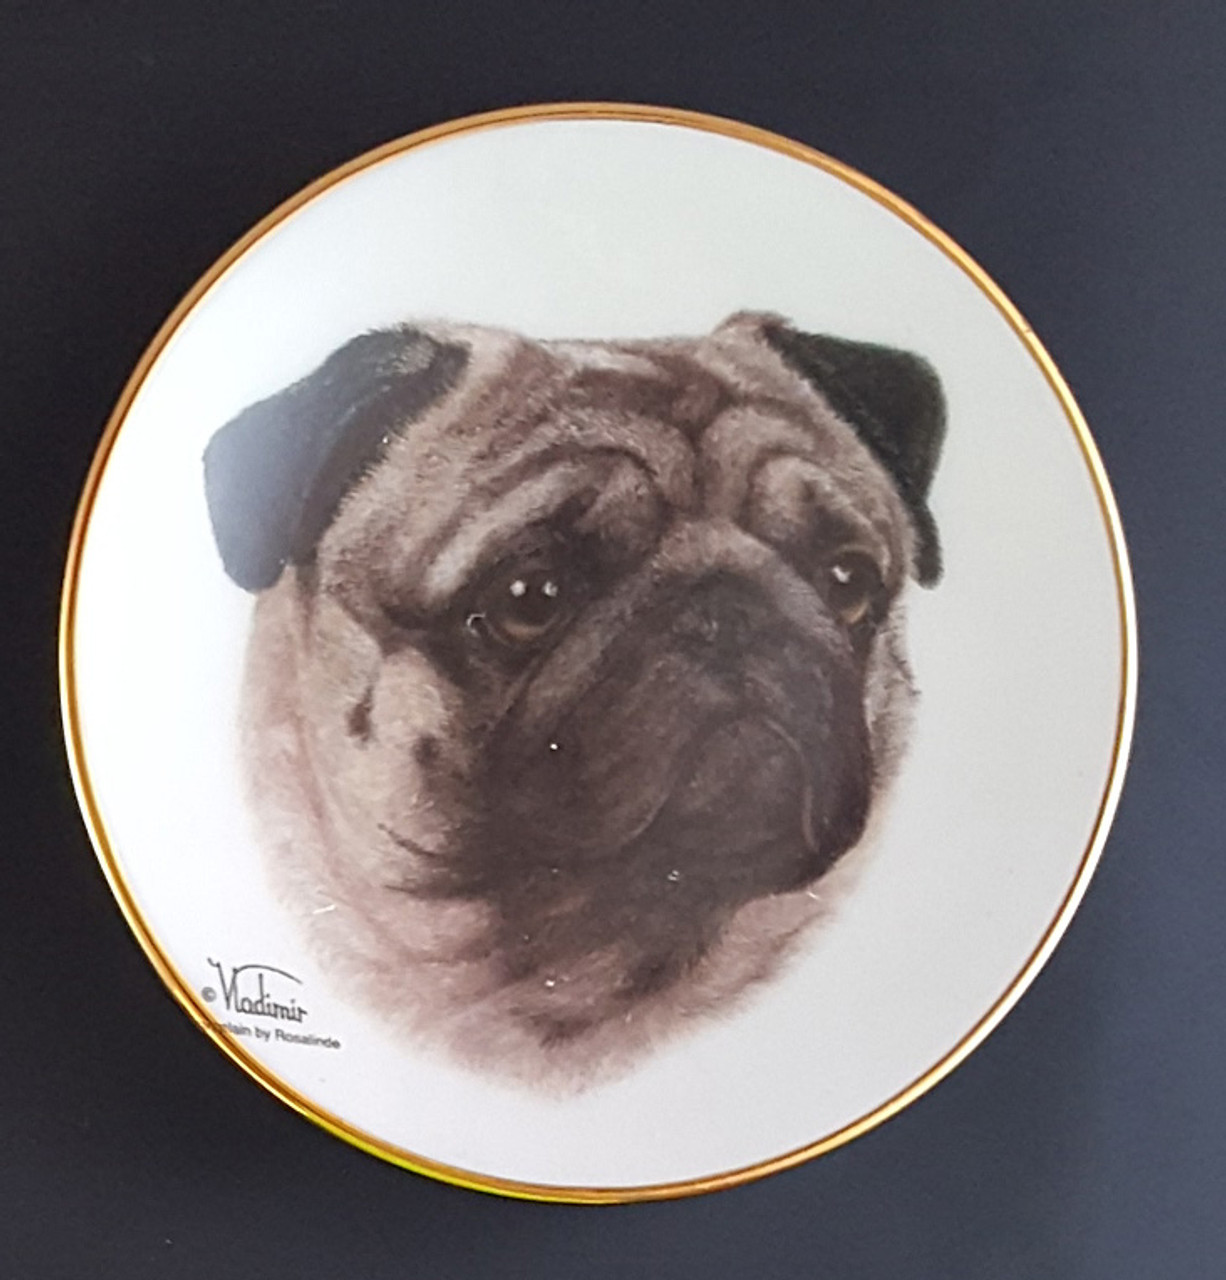 Purple Turtle Gifts Classic Color Collection 4in Mini Porcelain Plate Pug